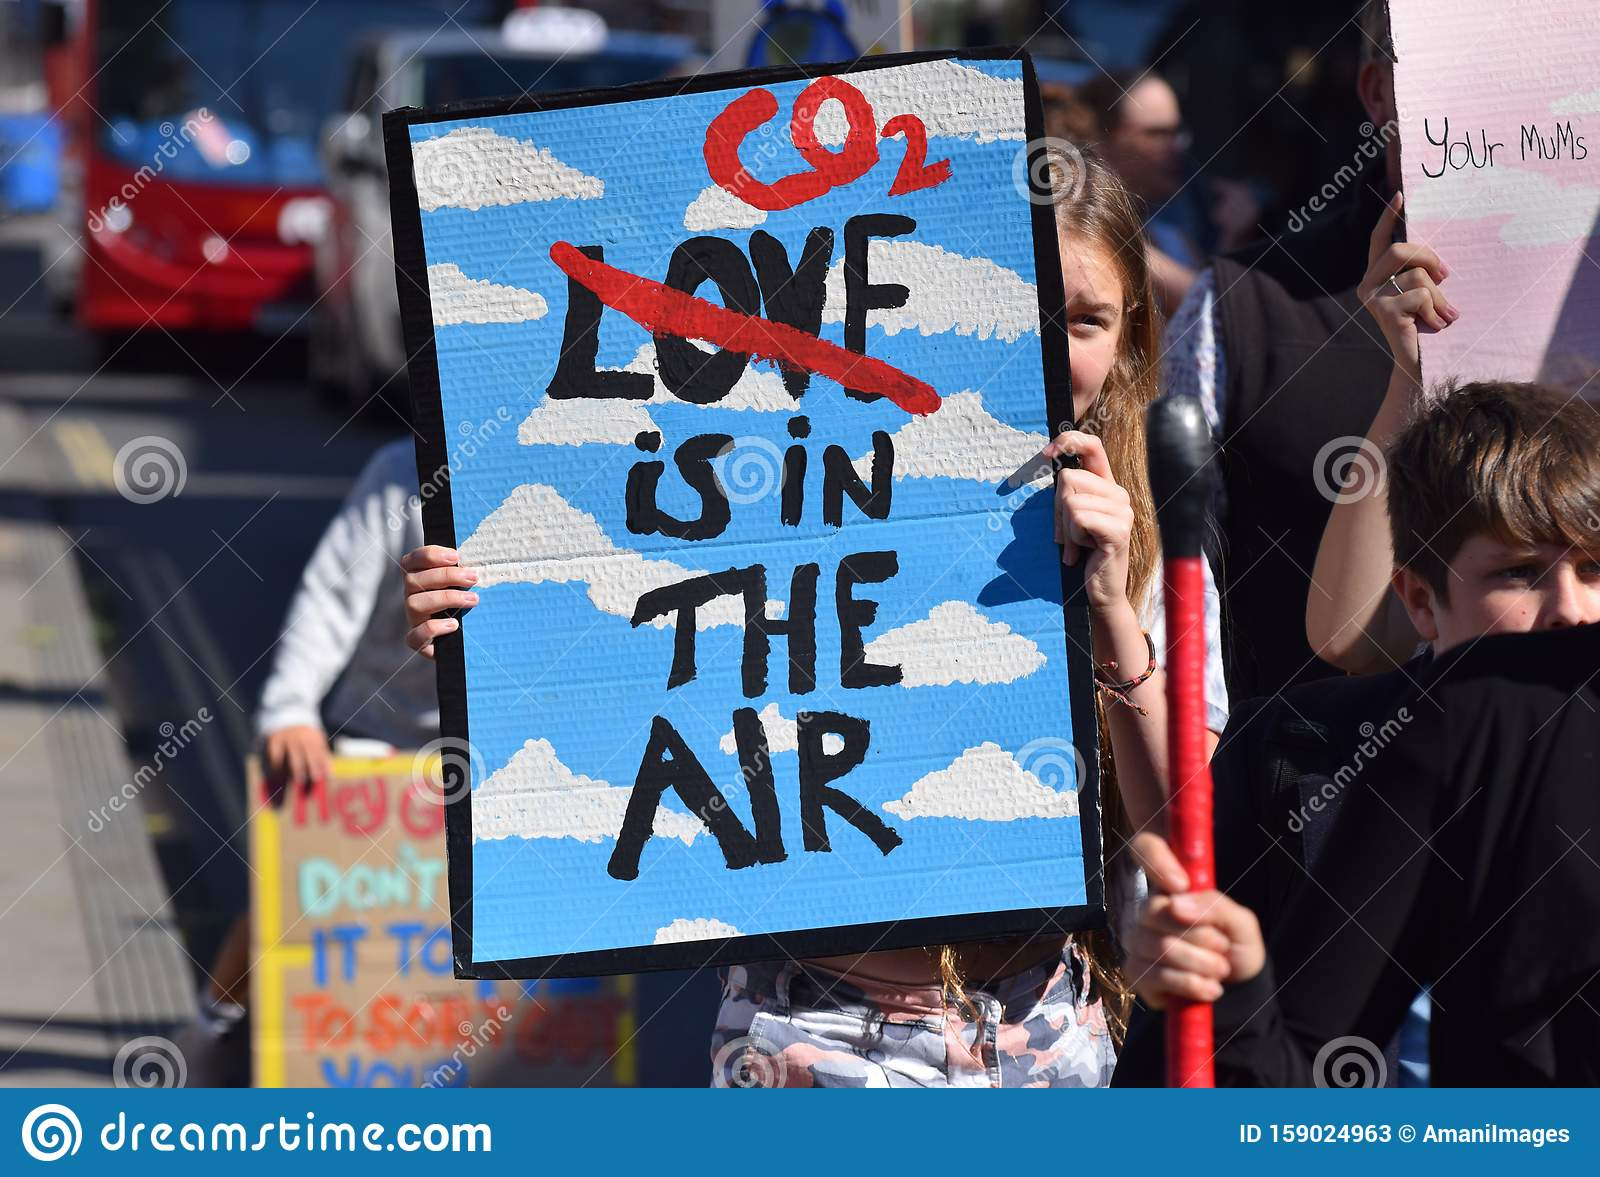 Youth Climate Change strike #FridaysforFuture. A little girl in a climate change protest on Friday 20 September 2019